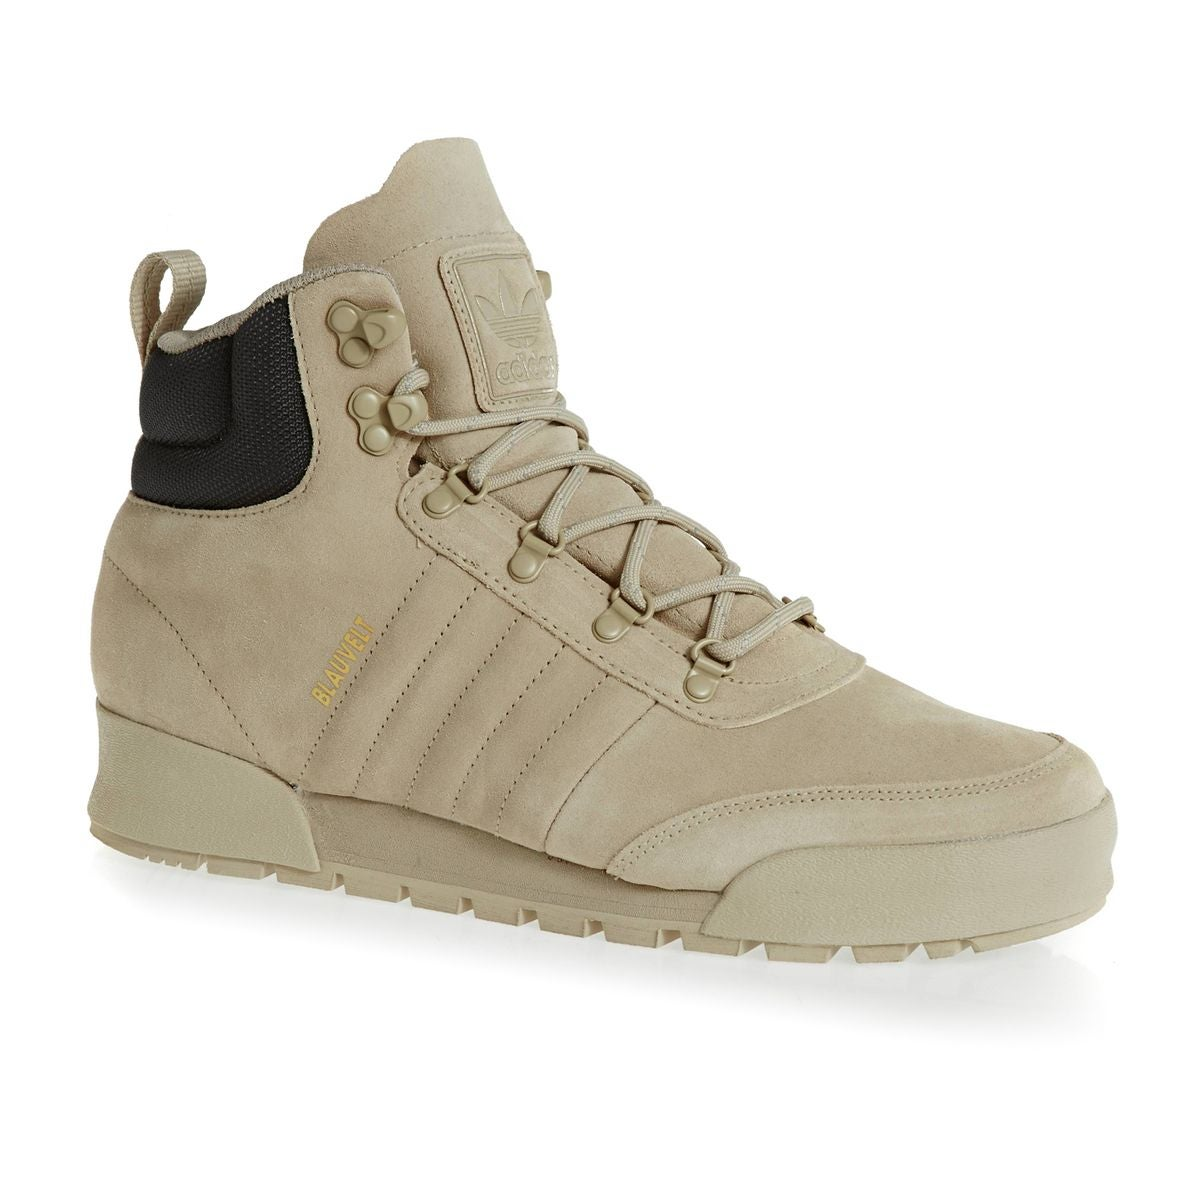 factory price a75e5 3015d Adidas Jake Boot 2.0 Shoes